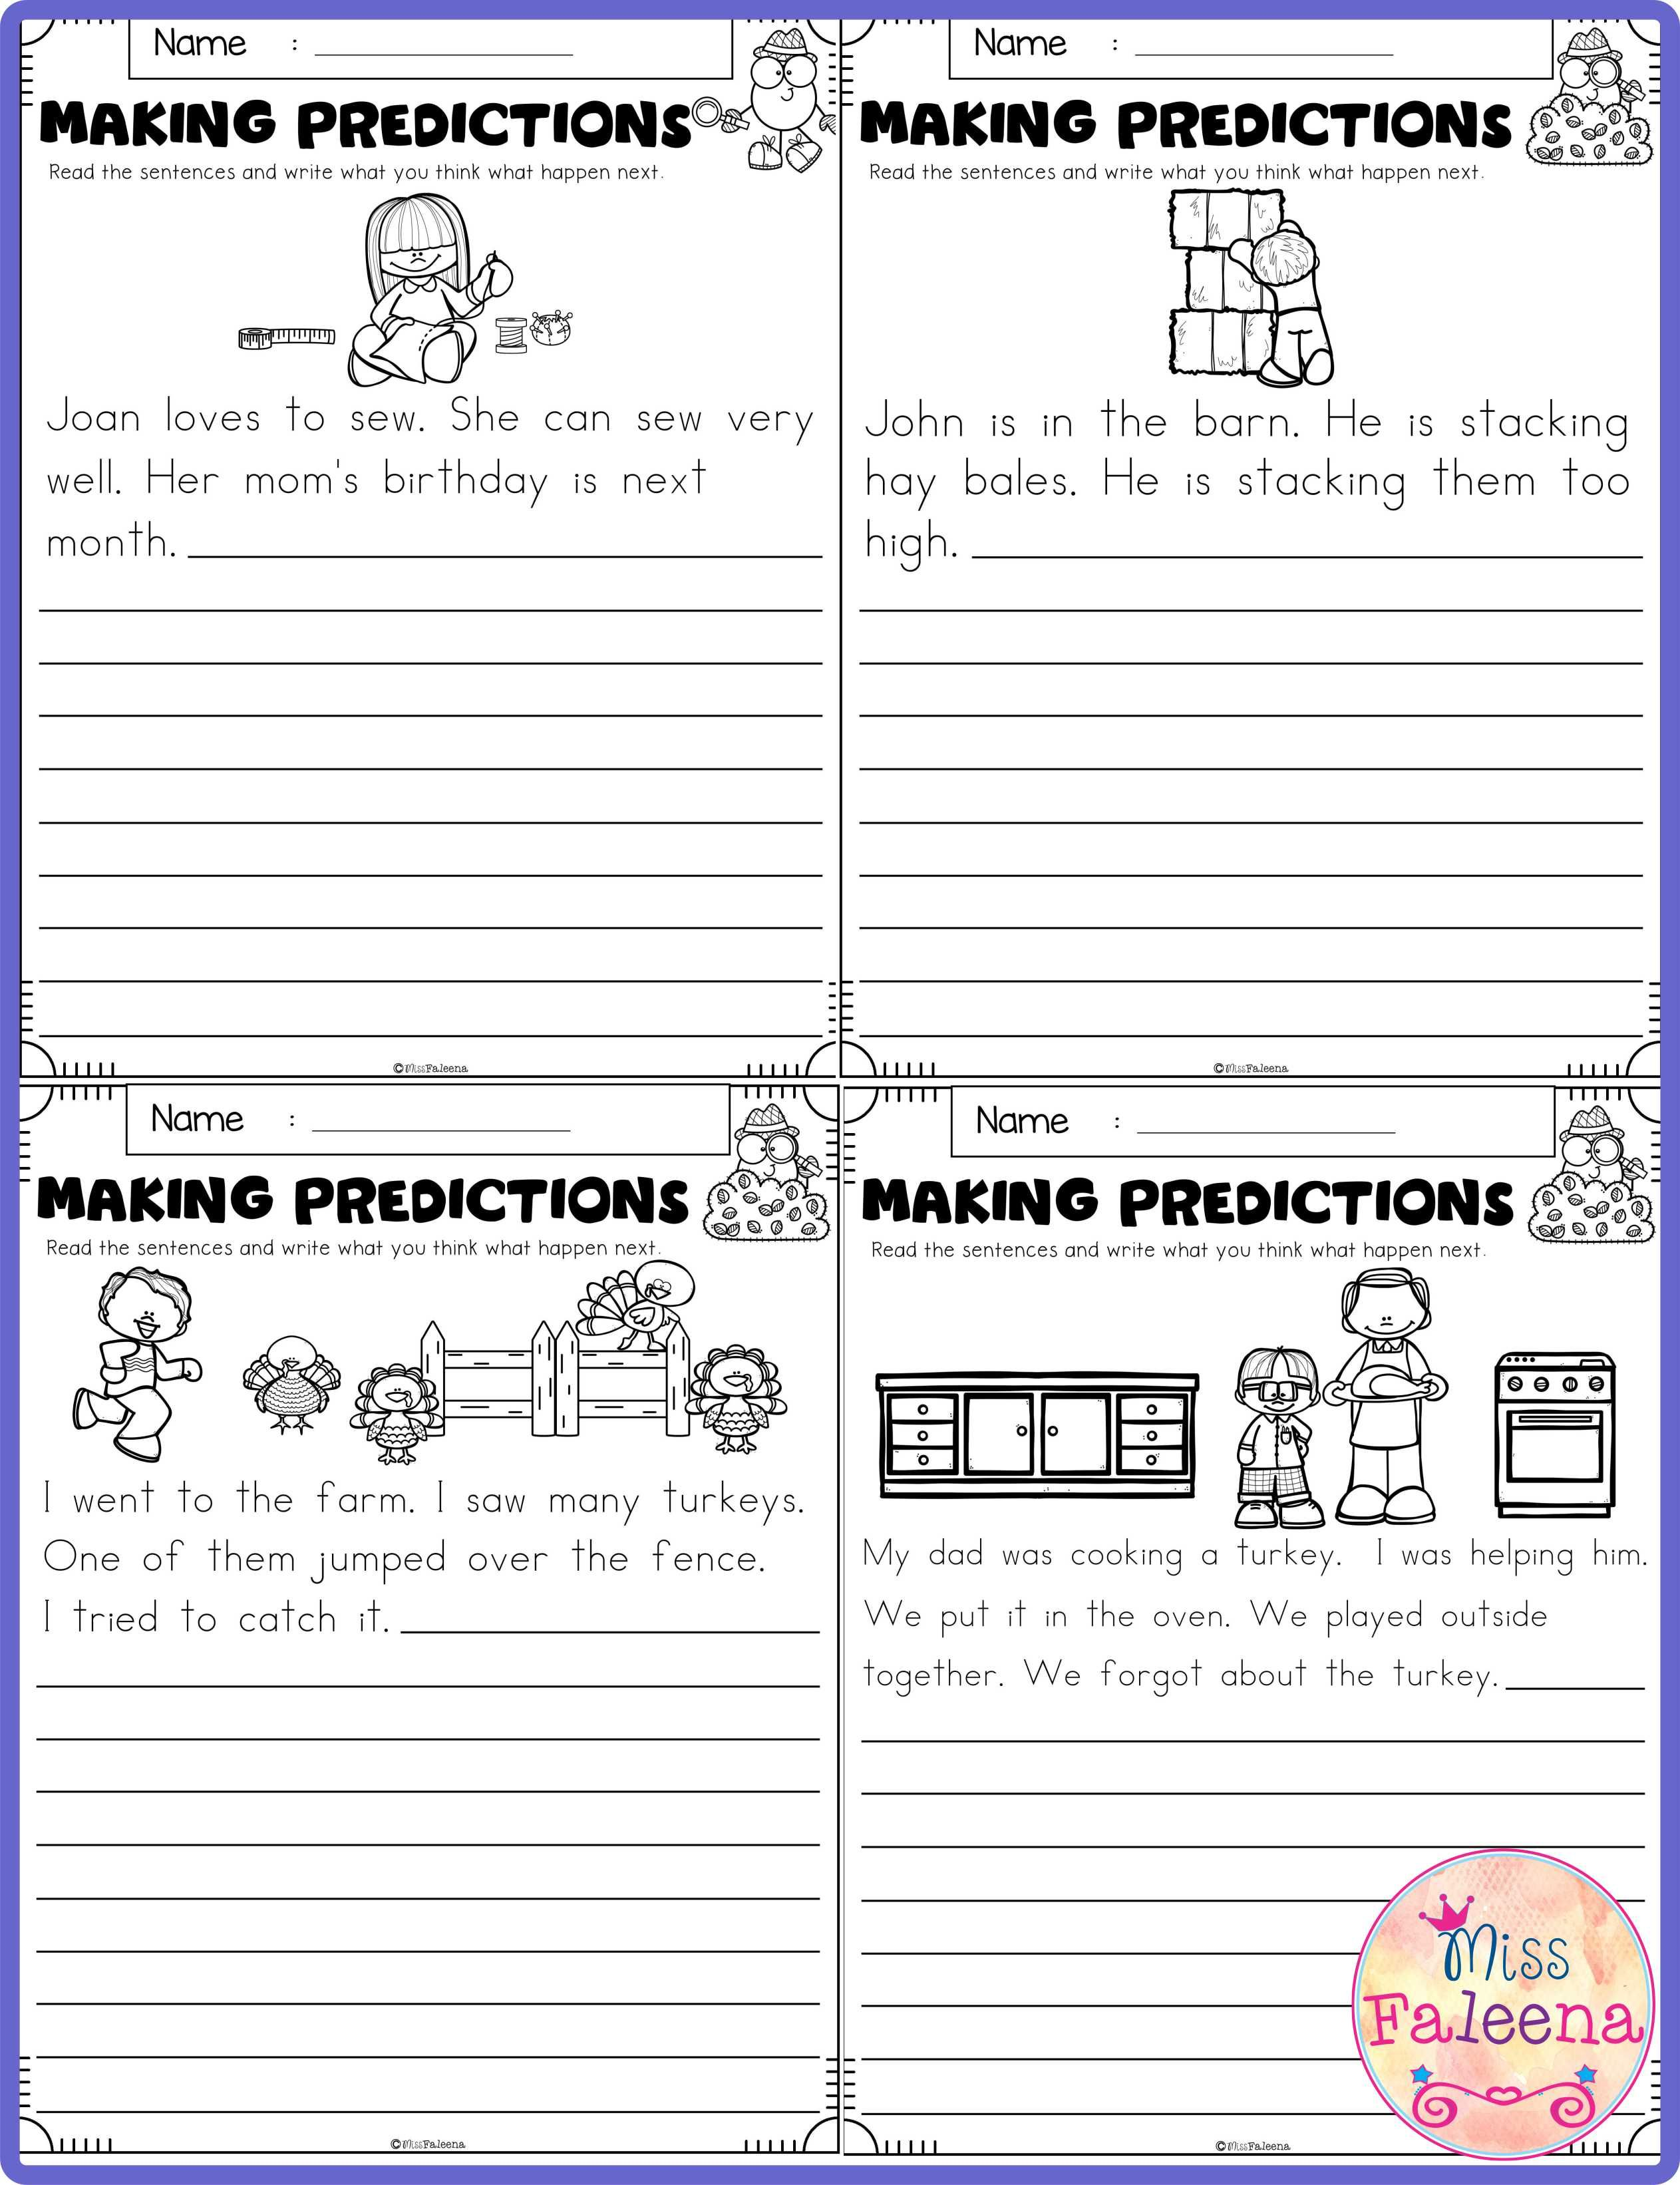 Predictions Worksheets 3rd Grade In 2020 Making Predictions First Grade Worksheets 2nd Grade Worksheets